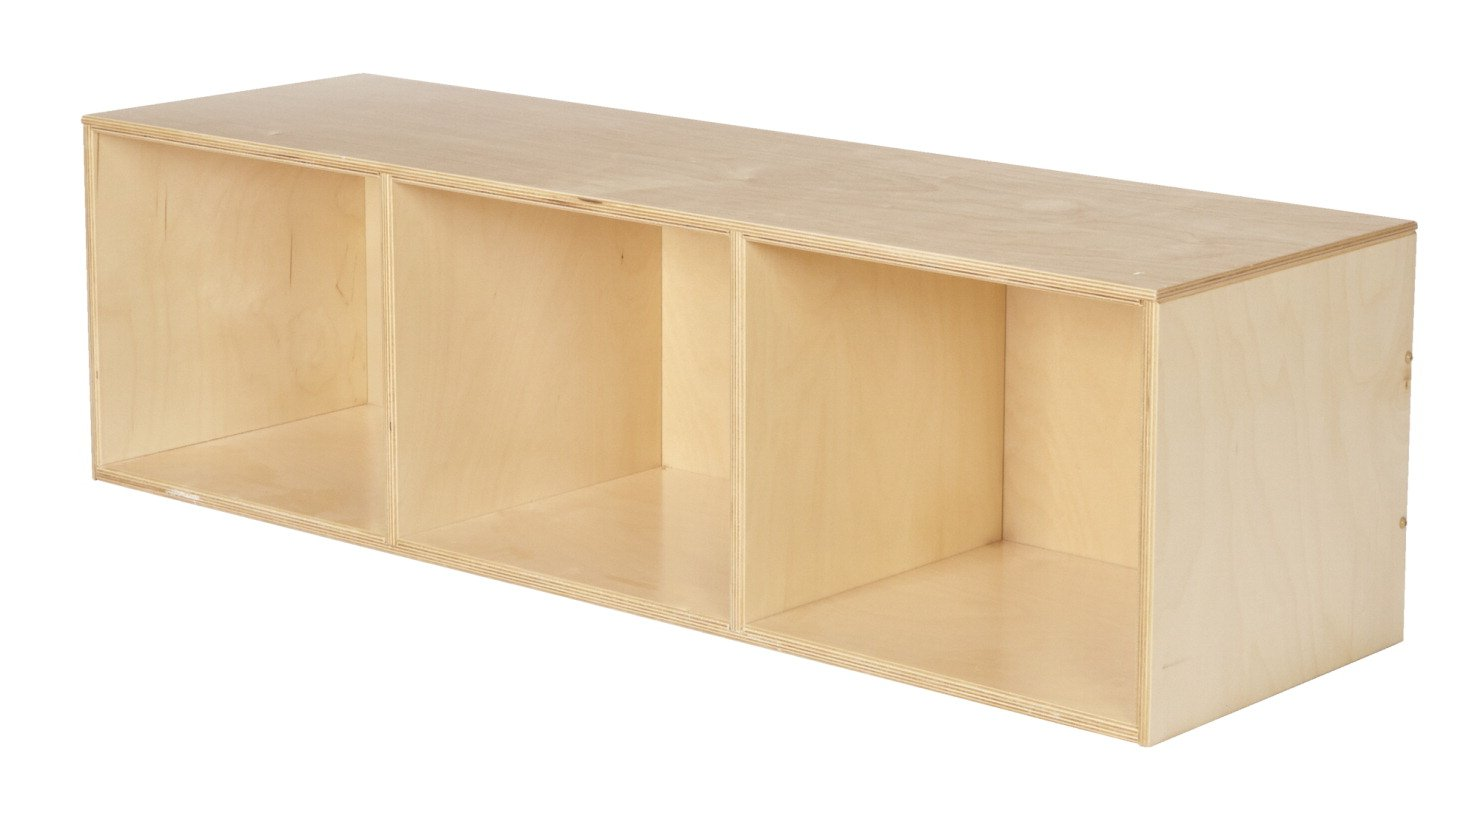 Childcraft 3-Compartment Stacker Compartment Storage, 47-3/4 x 14-1/4 x 13-3/4 Inches